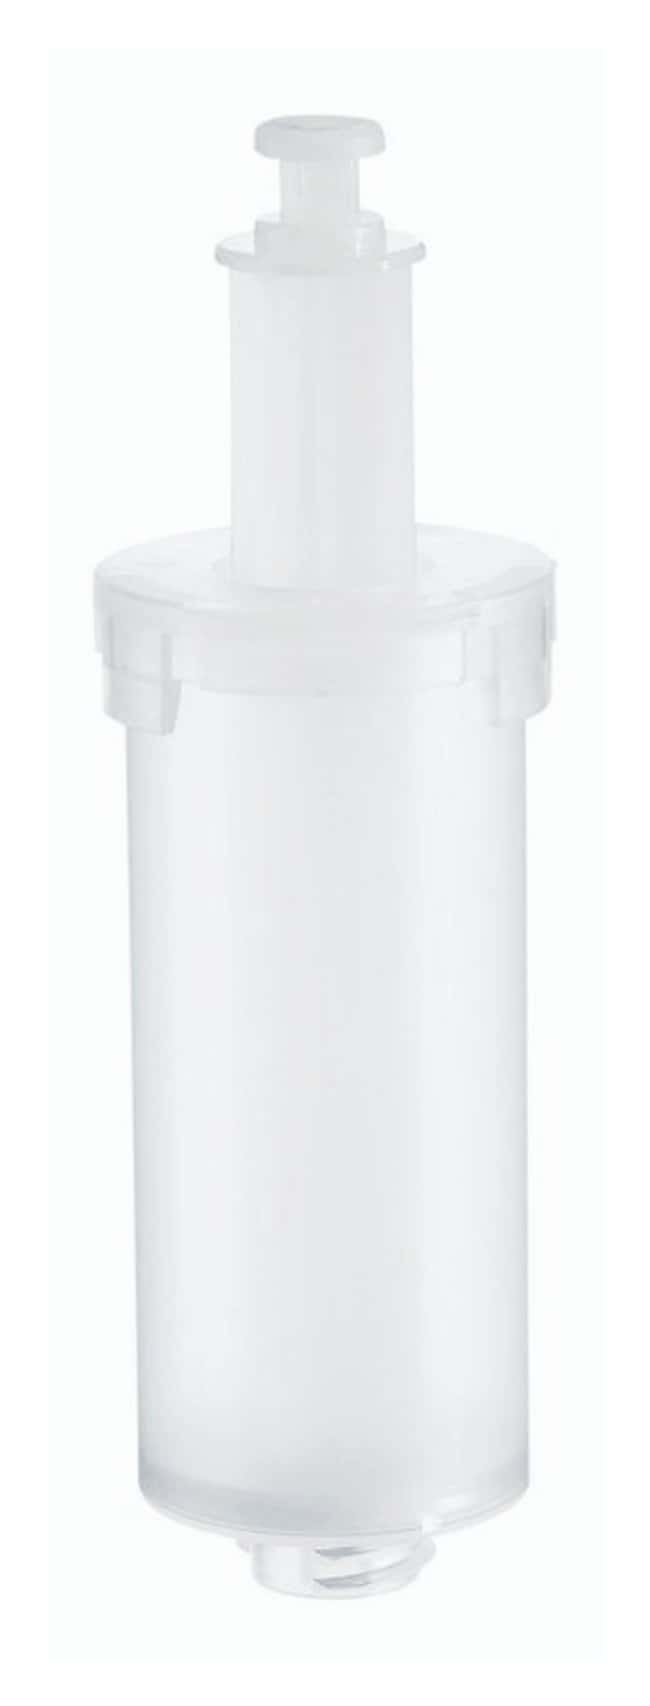 BRAND™ Replacement Dispenser Cartridges 10mL, non-sterile BRAND™ Replacement Dispenser Cartridges